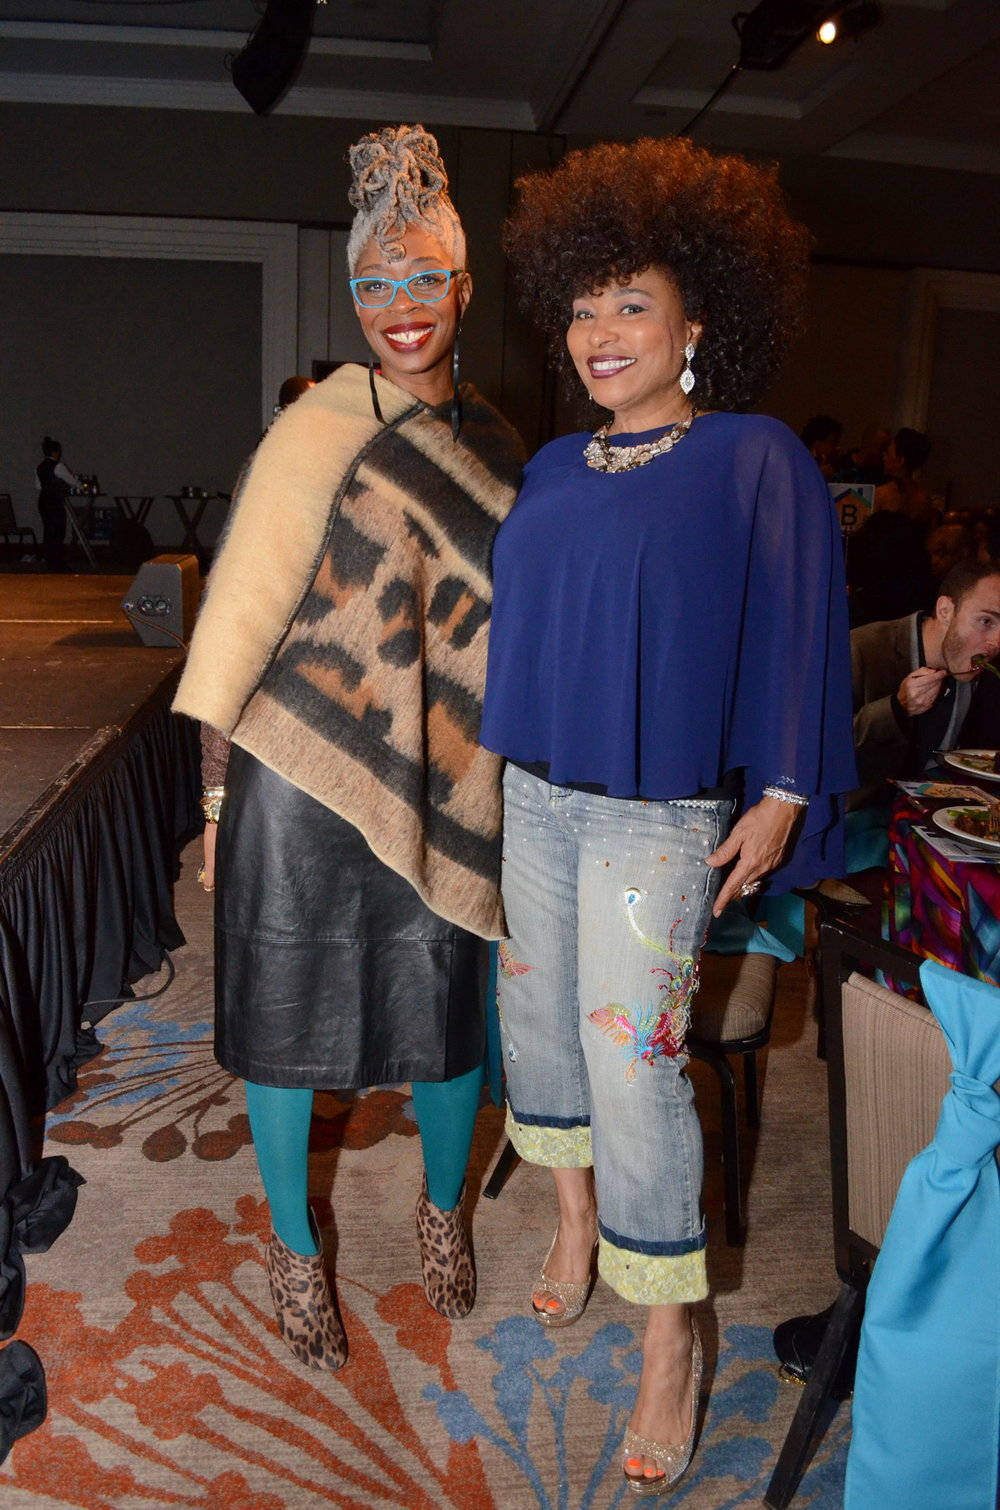 Pride Magazine editor Lashawnda Becoats and syndicated radio journalist Francene Marie Morris.